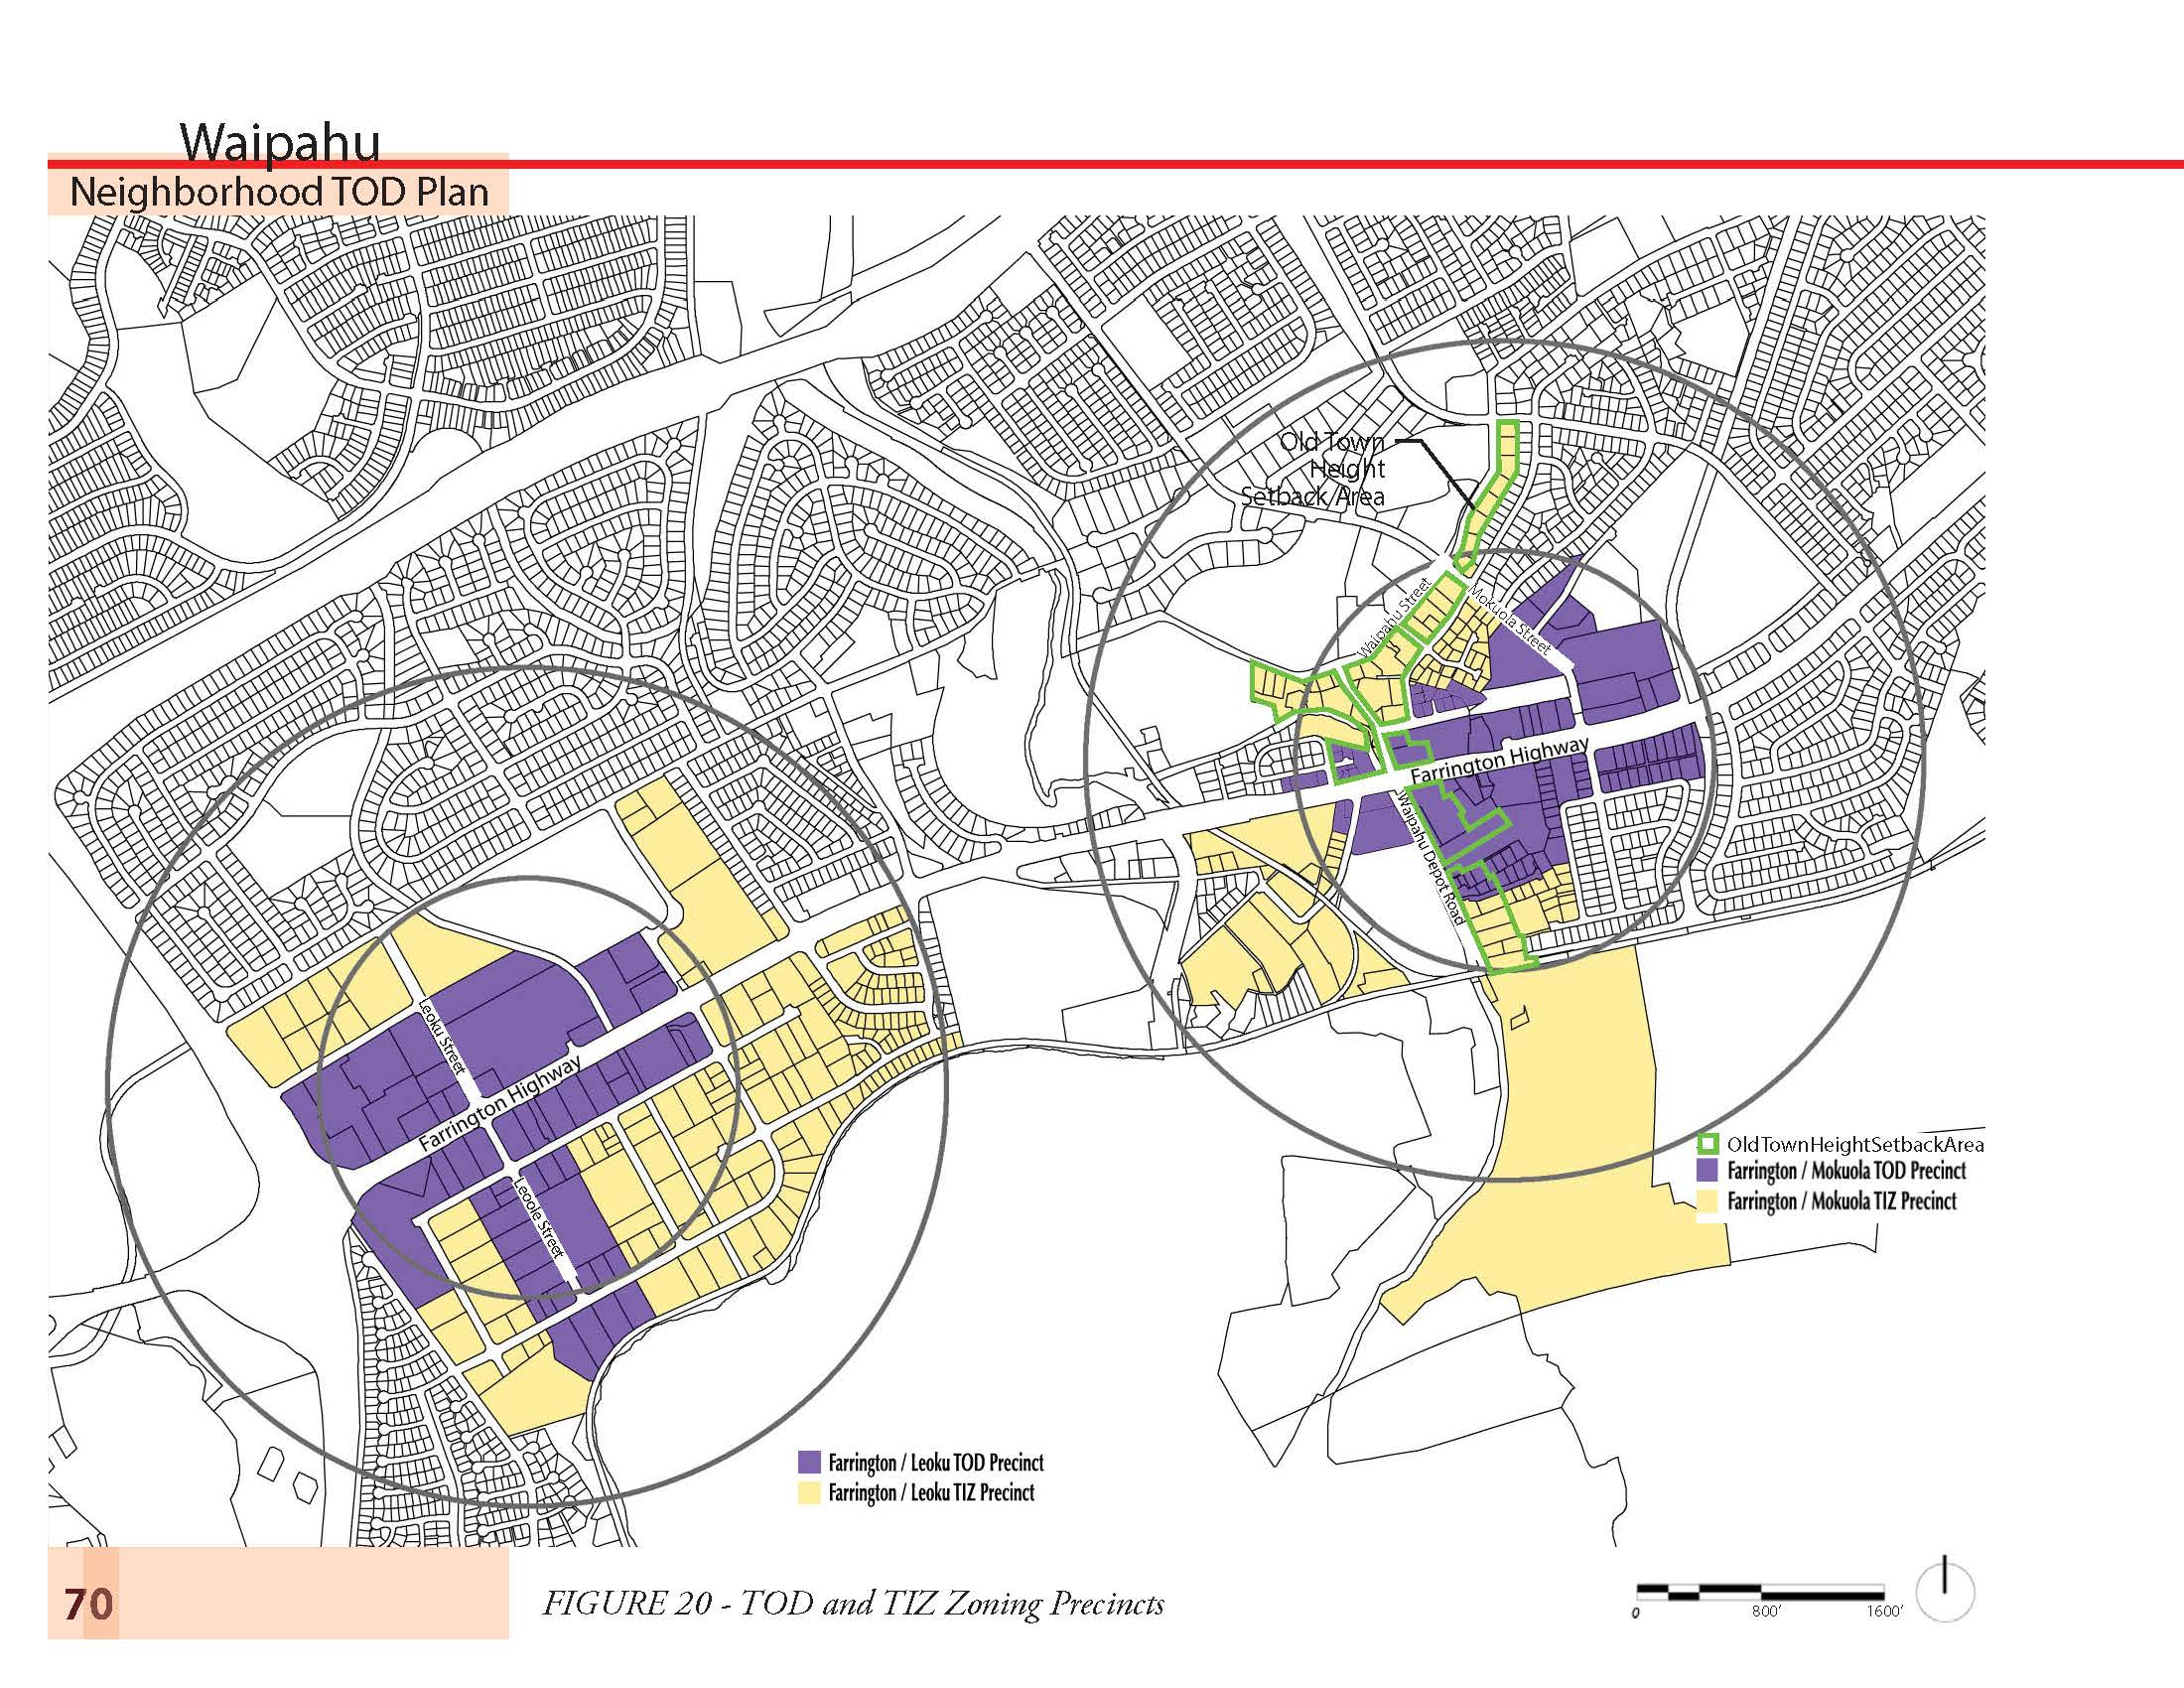 160513_Waipahu Neighborhood TOD Plan_Page_076.jpg